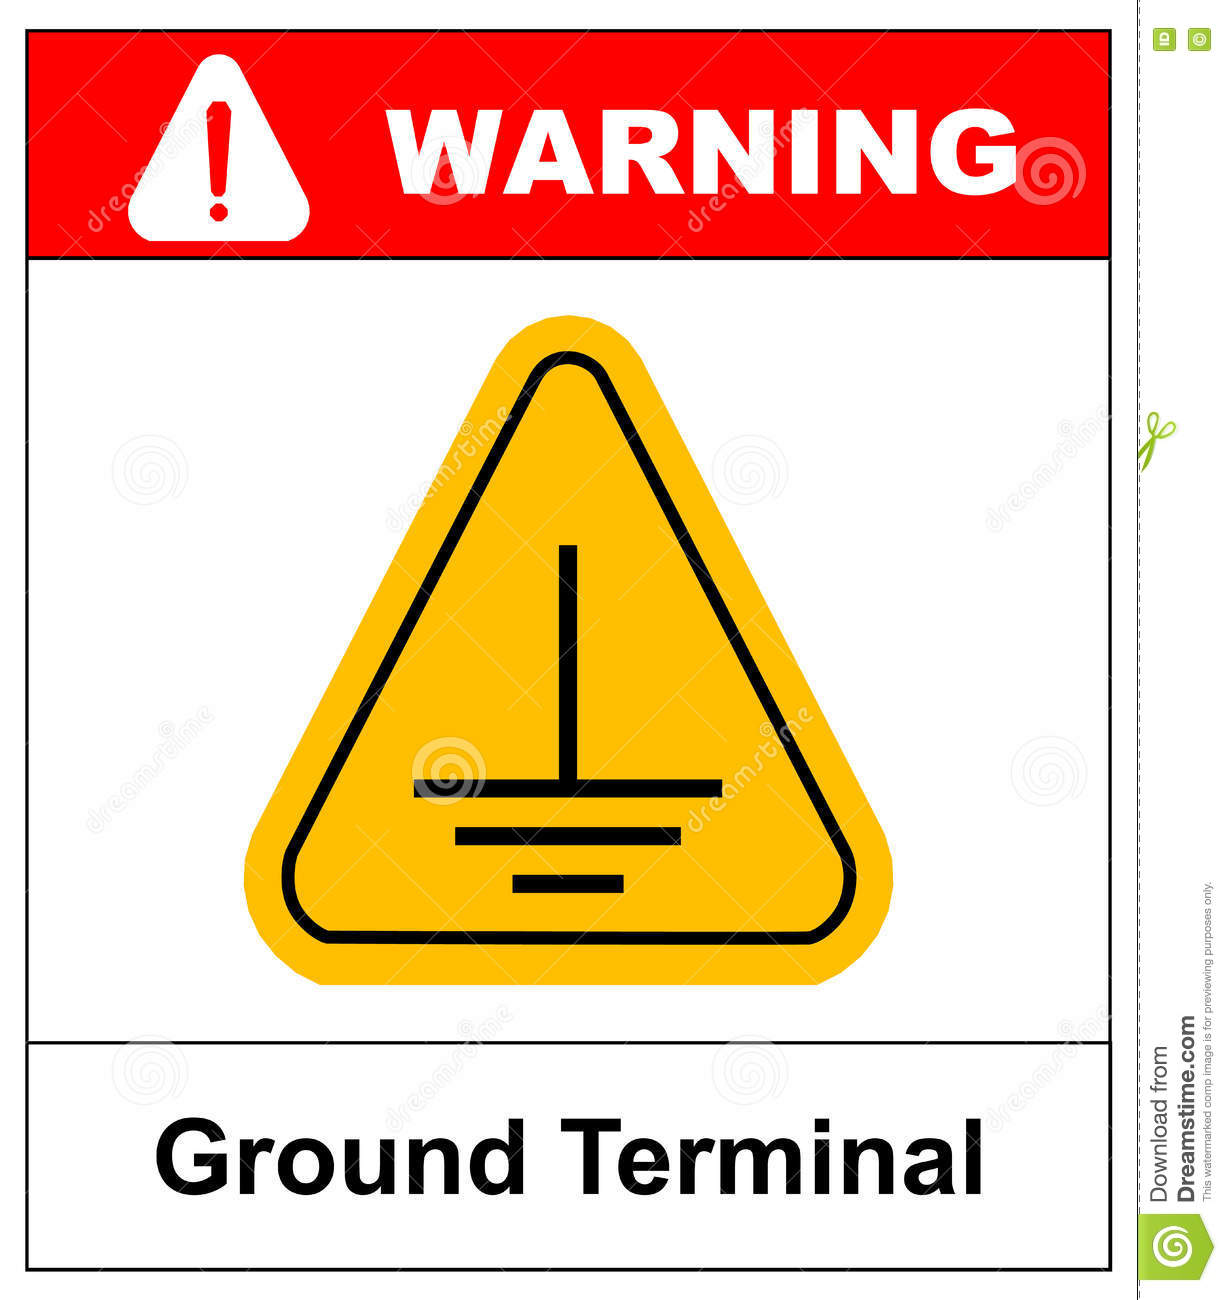 Electrical Grounding Sign Stock Vector Illustration Of Danger